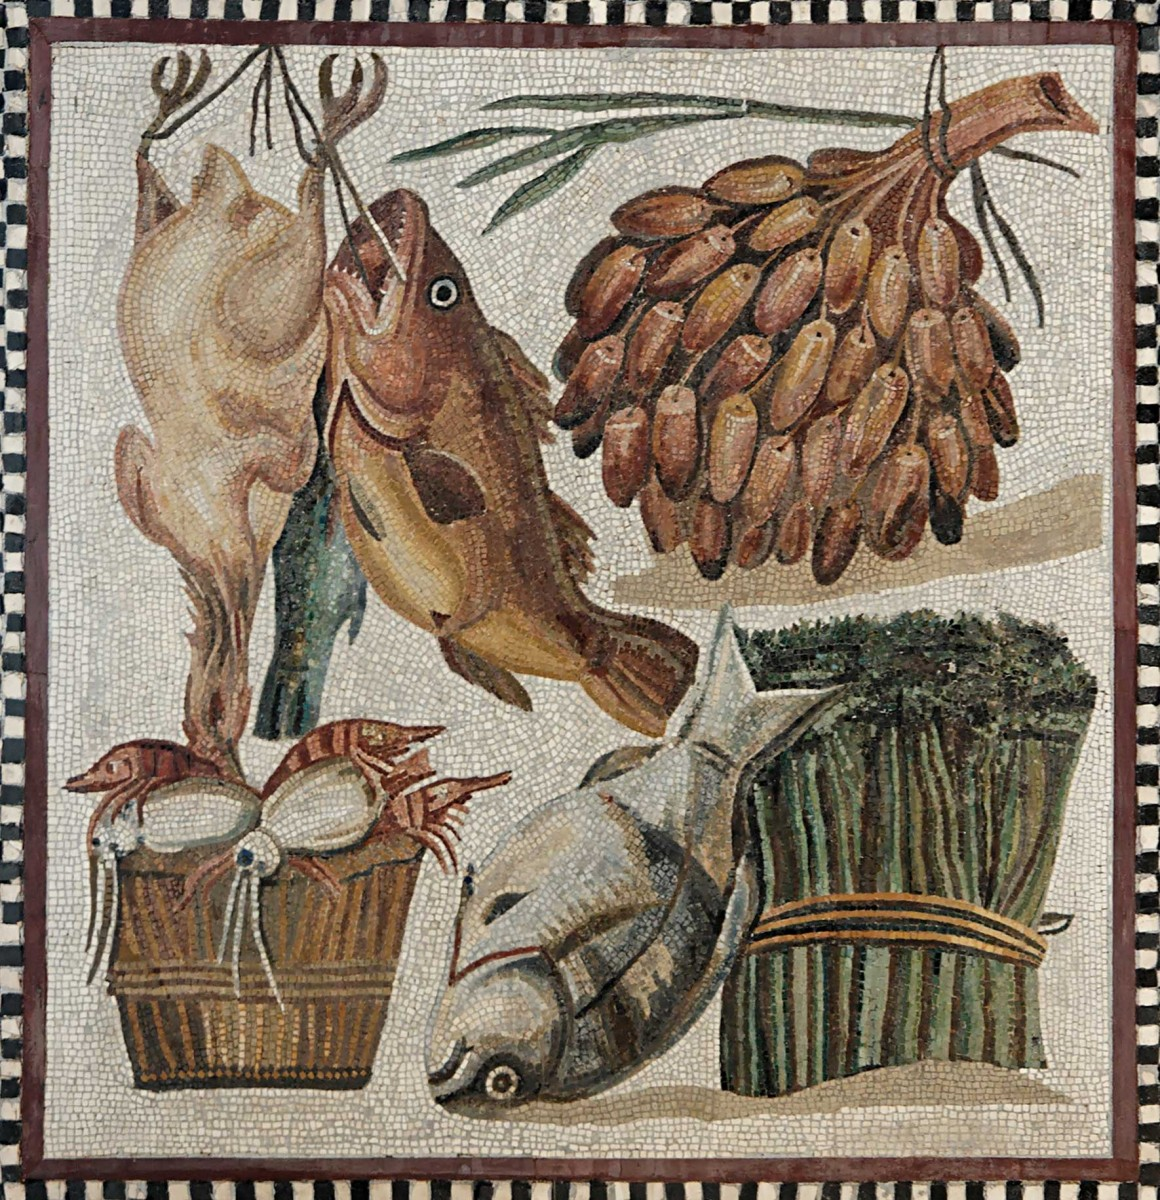 Still-life mosaic of fruit, vegetables, seafood and meat from a villa at Tor Marancia, 2nd century CE.